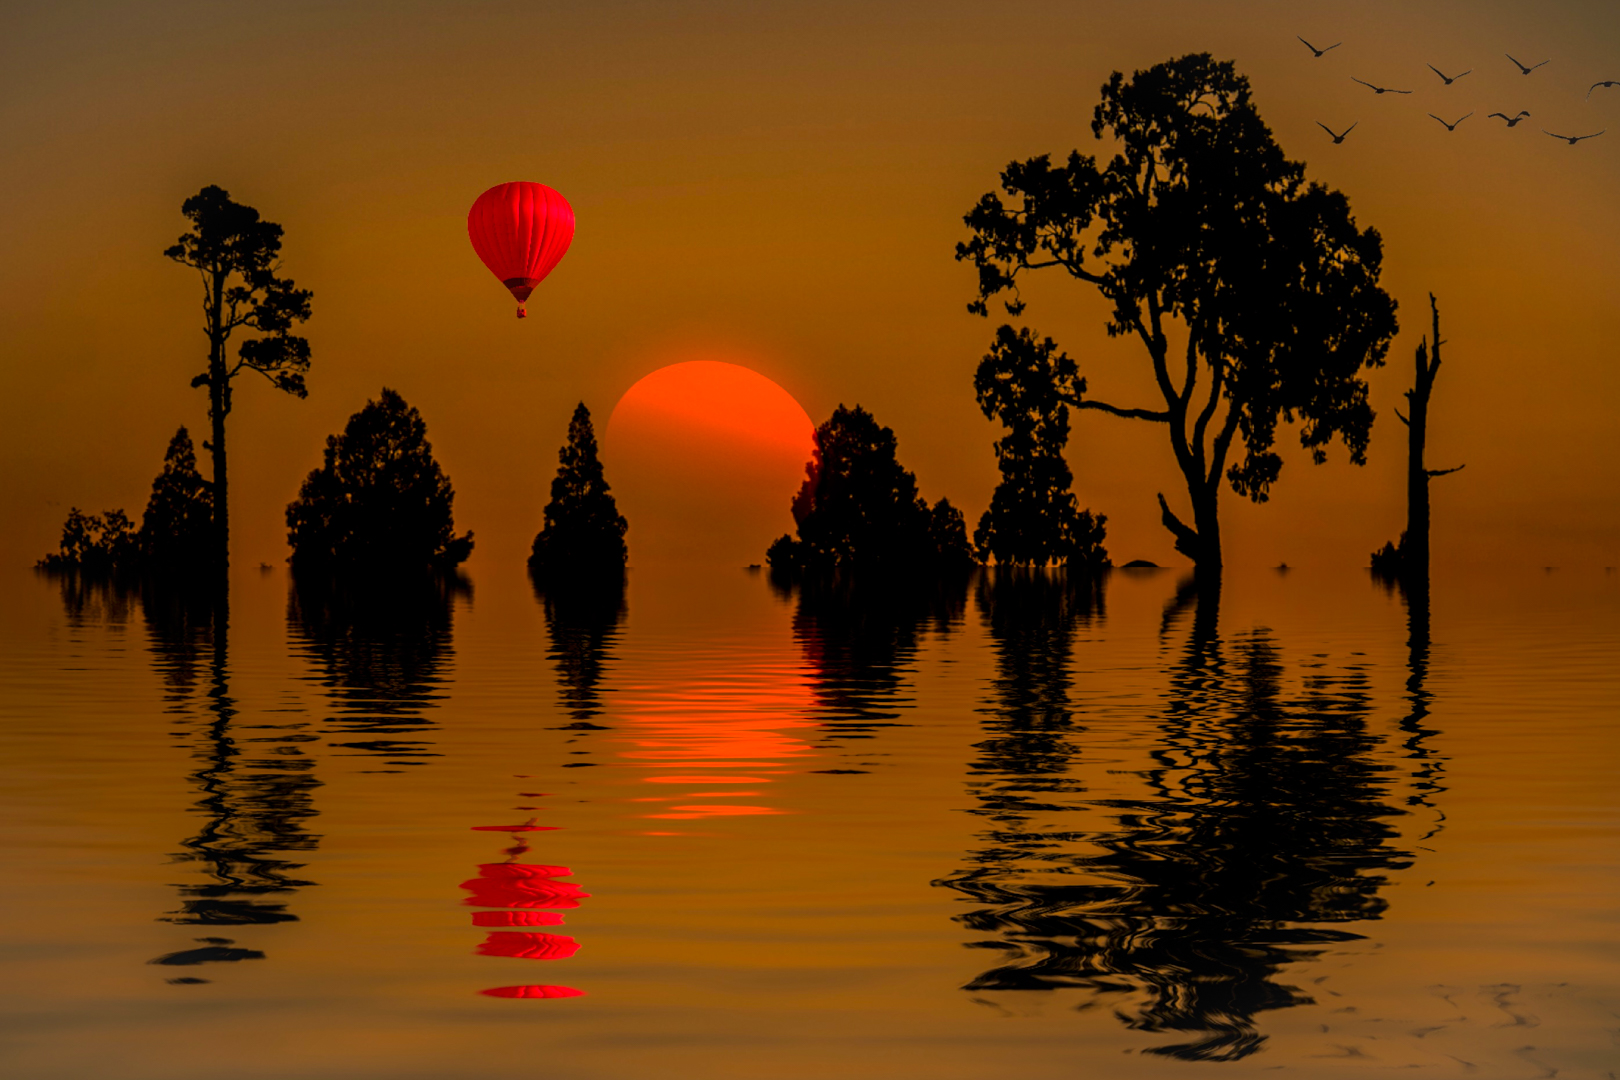 """2019 Creative Section """"Sunset Balloon"""" by Walter Shepherd: Awarded SSNEP Silver Medal"""